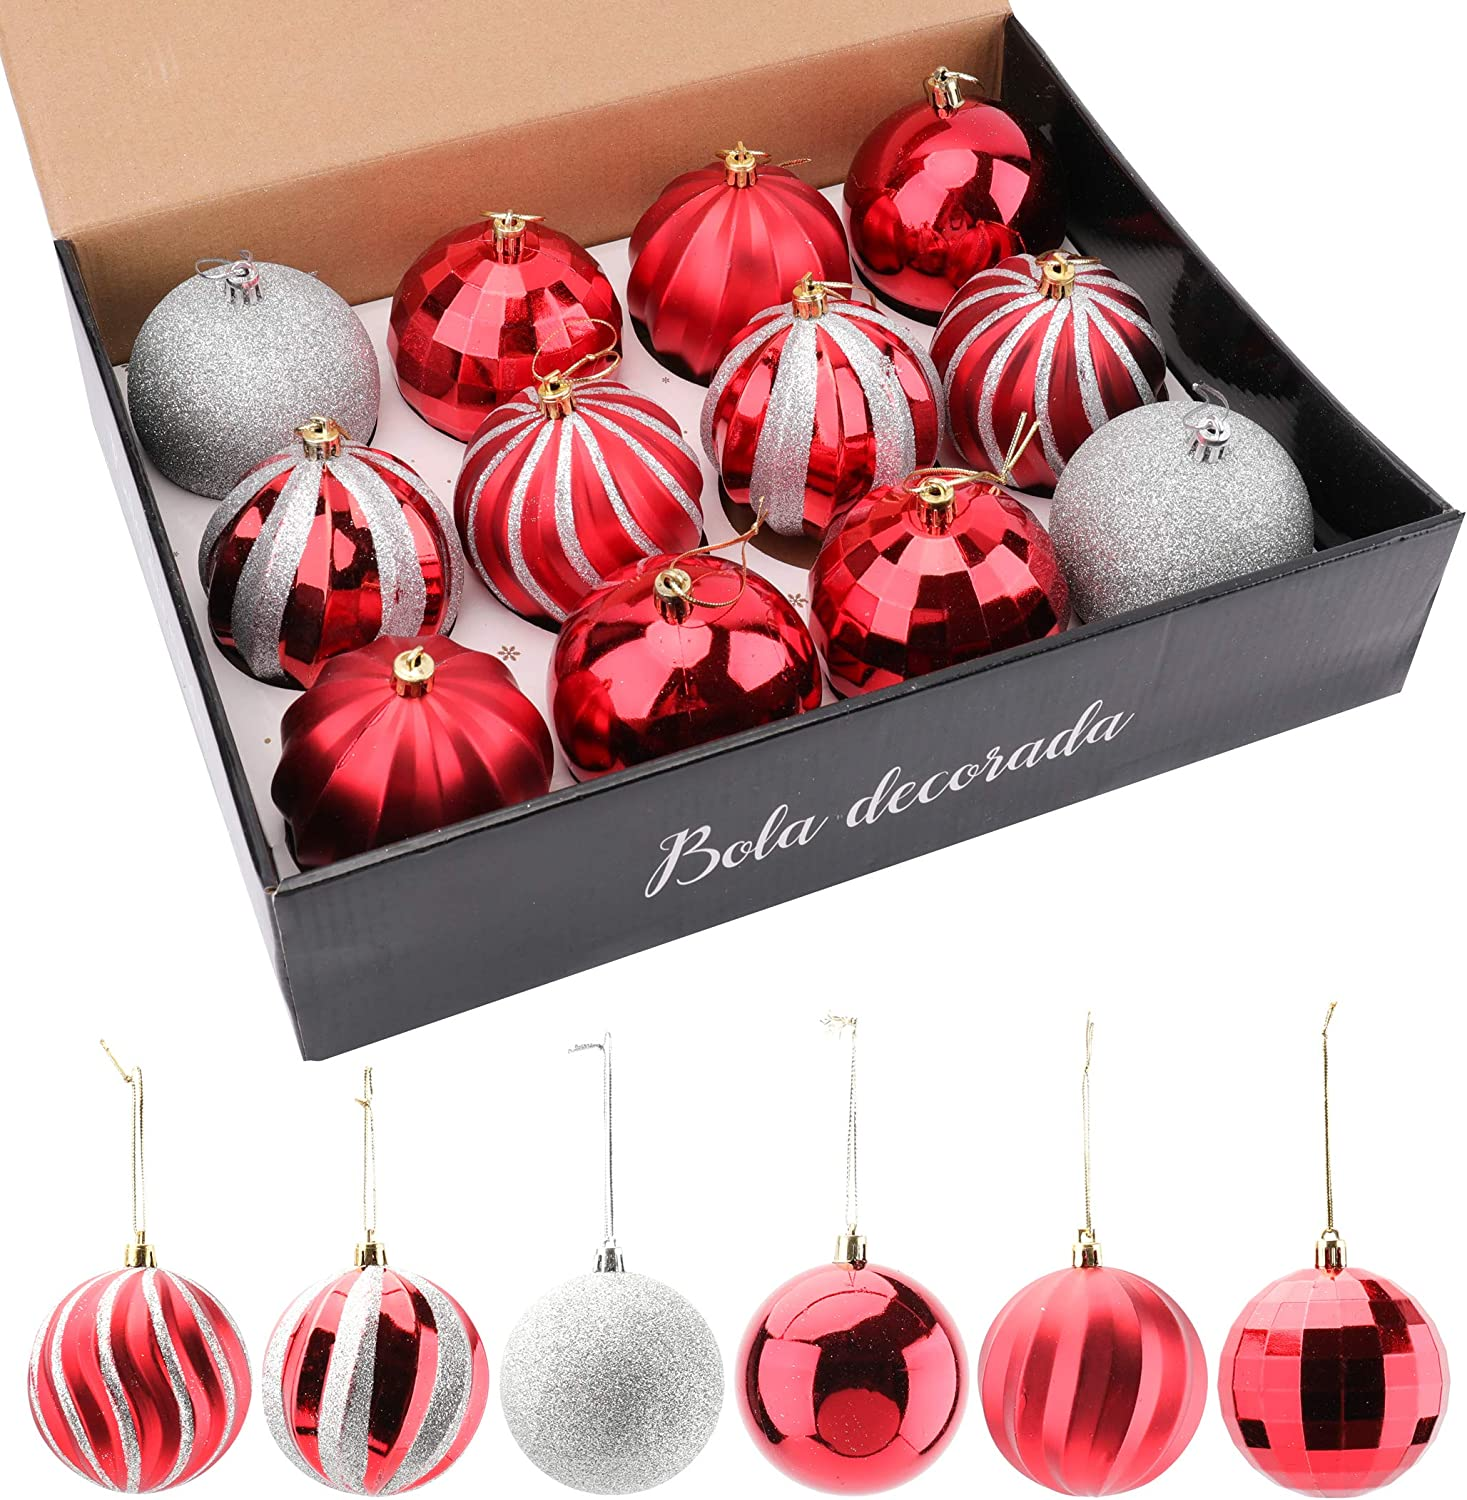 """WUWEOT 12 Pack 3.1"""" Christmas Ball Ornaments, Painting & Glittering Shatterproof Ornaments, Hanging Christmas Ornaments for Xmas Tree Holiday Wedding Christmas Party Decoration Home Decor (Red+White)"""